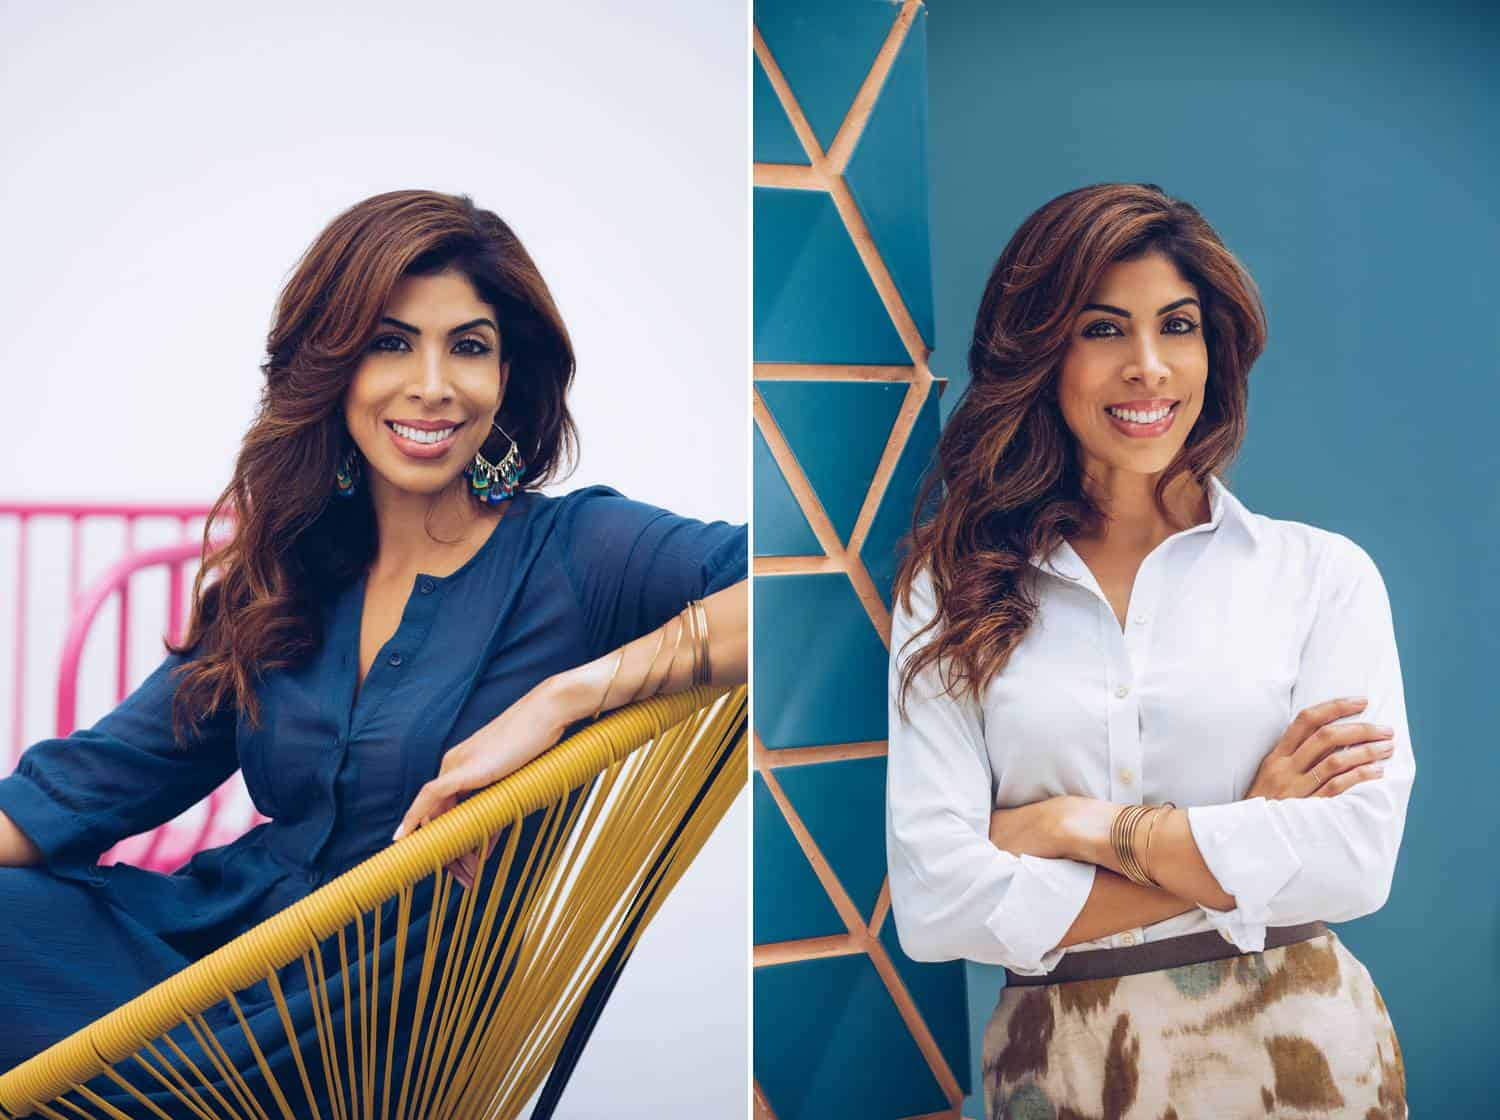 A Latinx woman poses for two headshots. In the left one, she sits in a rattan chair wearing a blue dress in front of a white background. In the second image, she's standing, wearing a white button-down shirt, and leaning against a teal blue wall decorated with gold geometric shapes. Both photos are by Lauren Alexis Rodriguez in Miami.